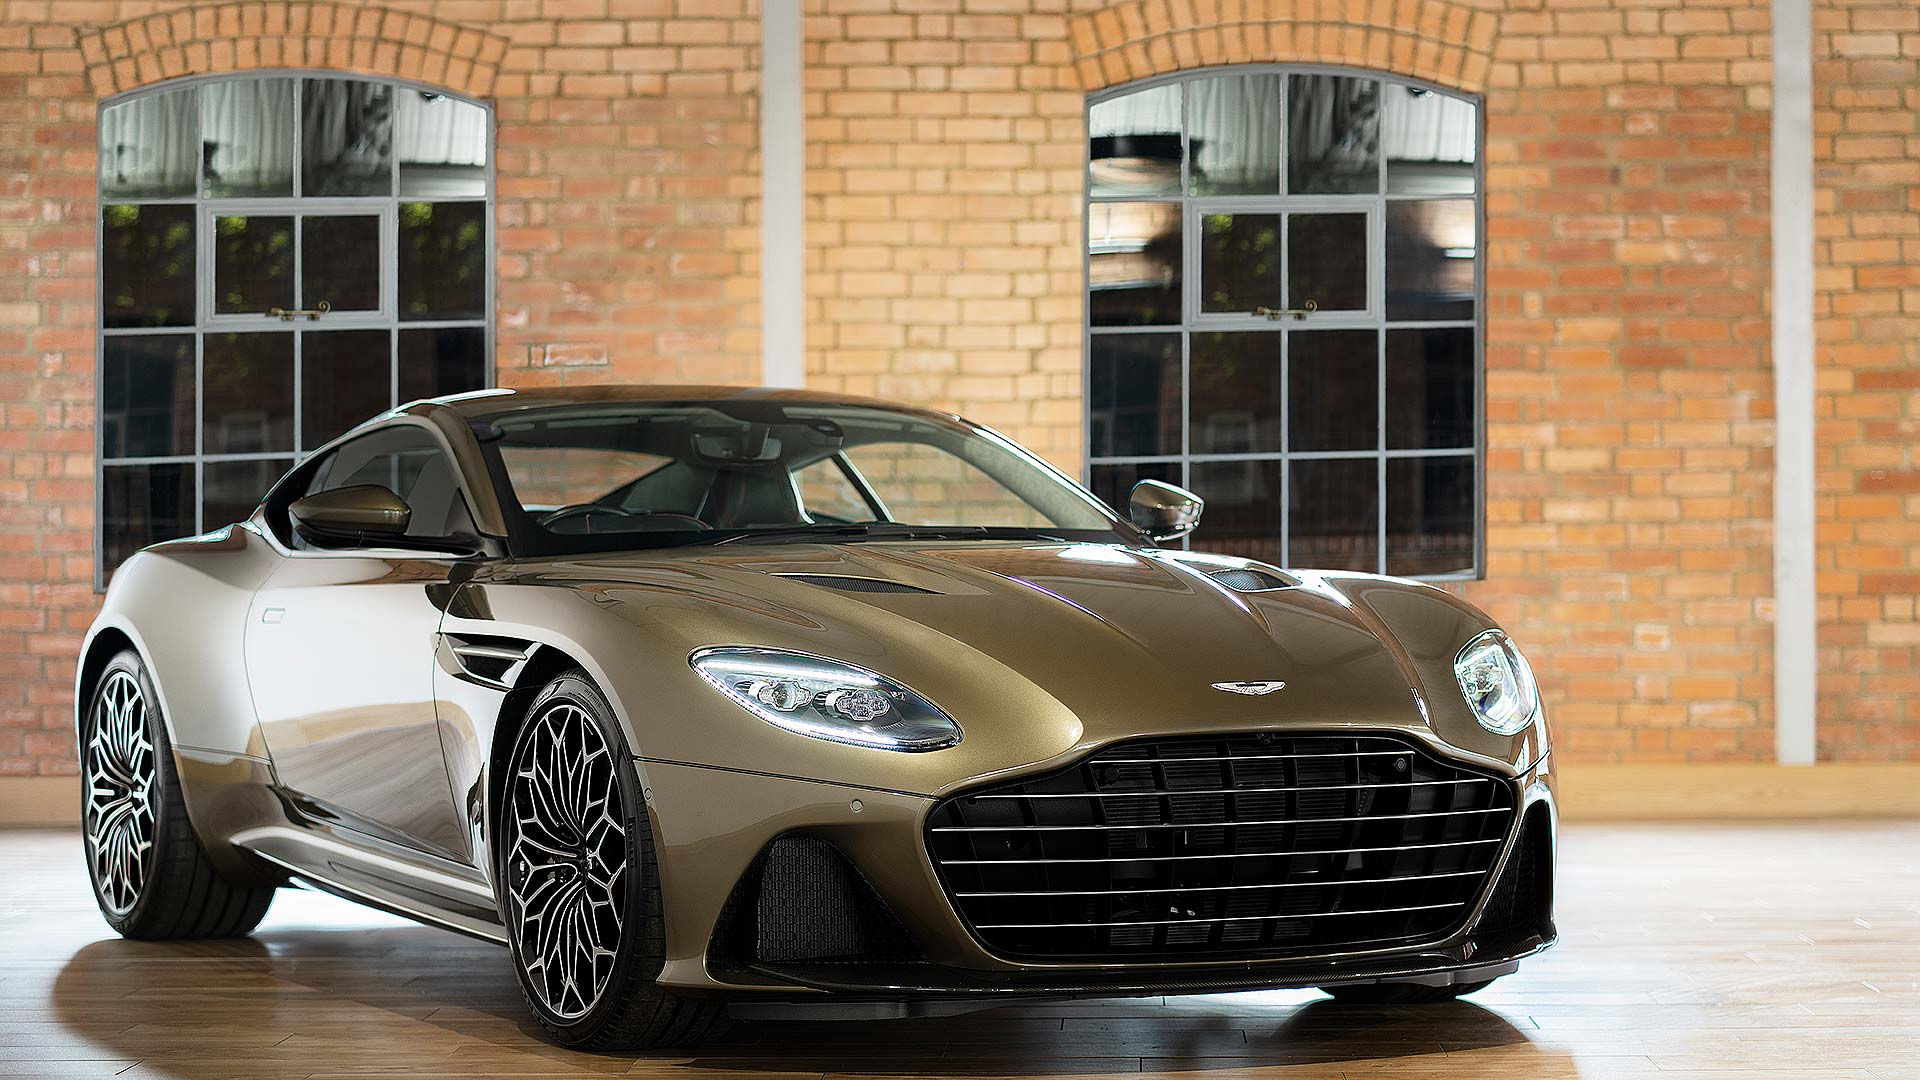 Special Aston Martin Dbs Pays Tribute To James Bond Motoring Research